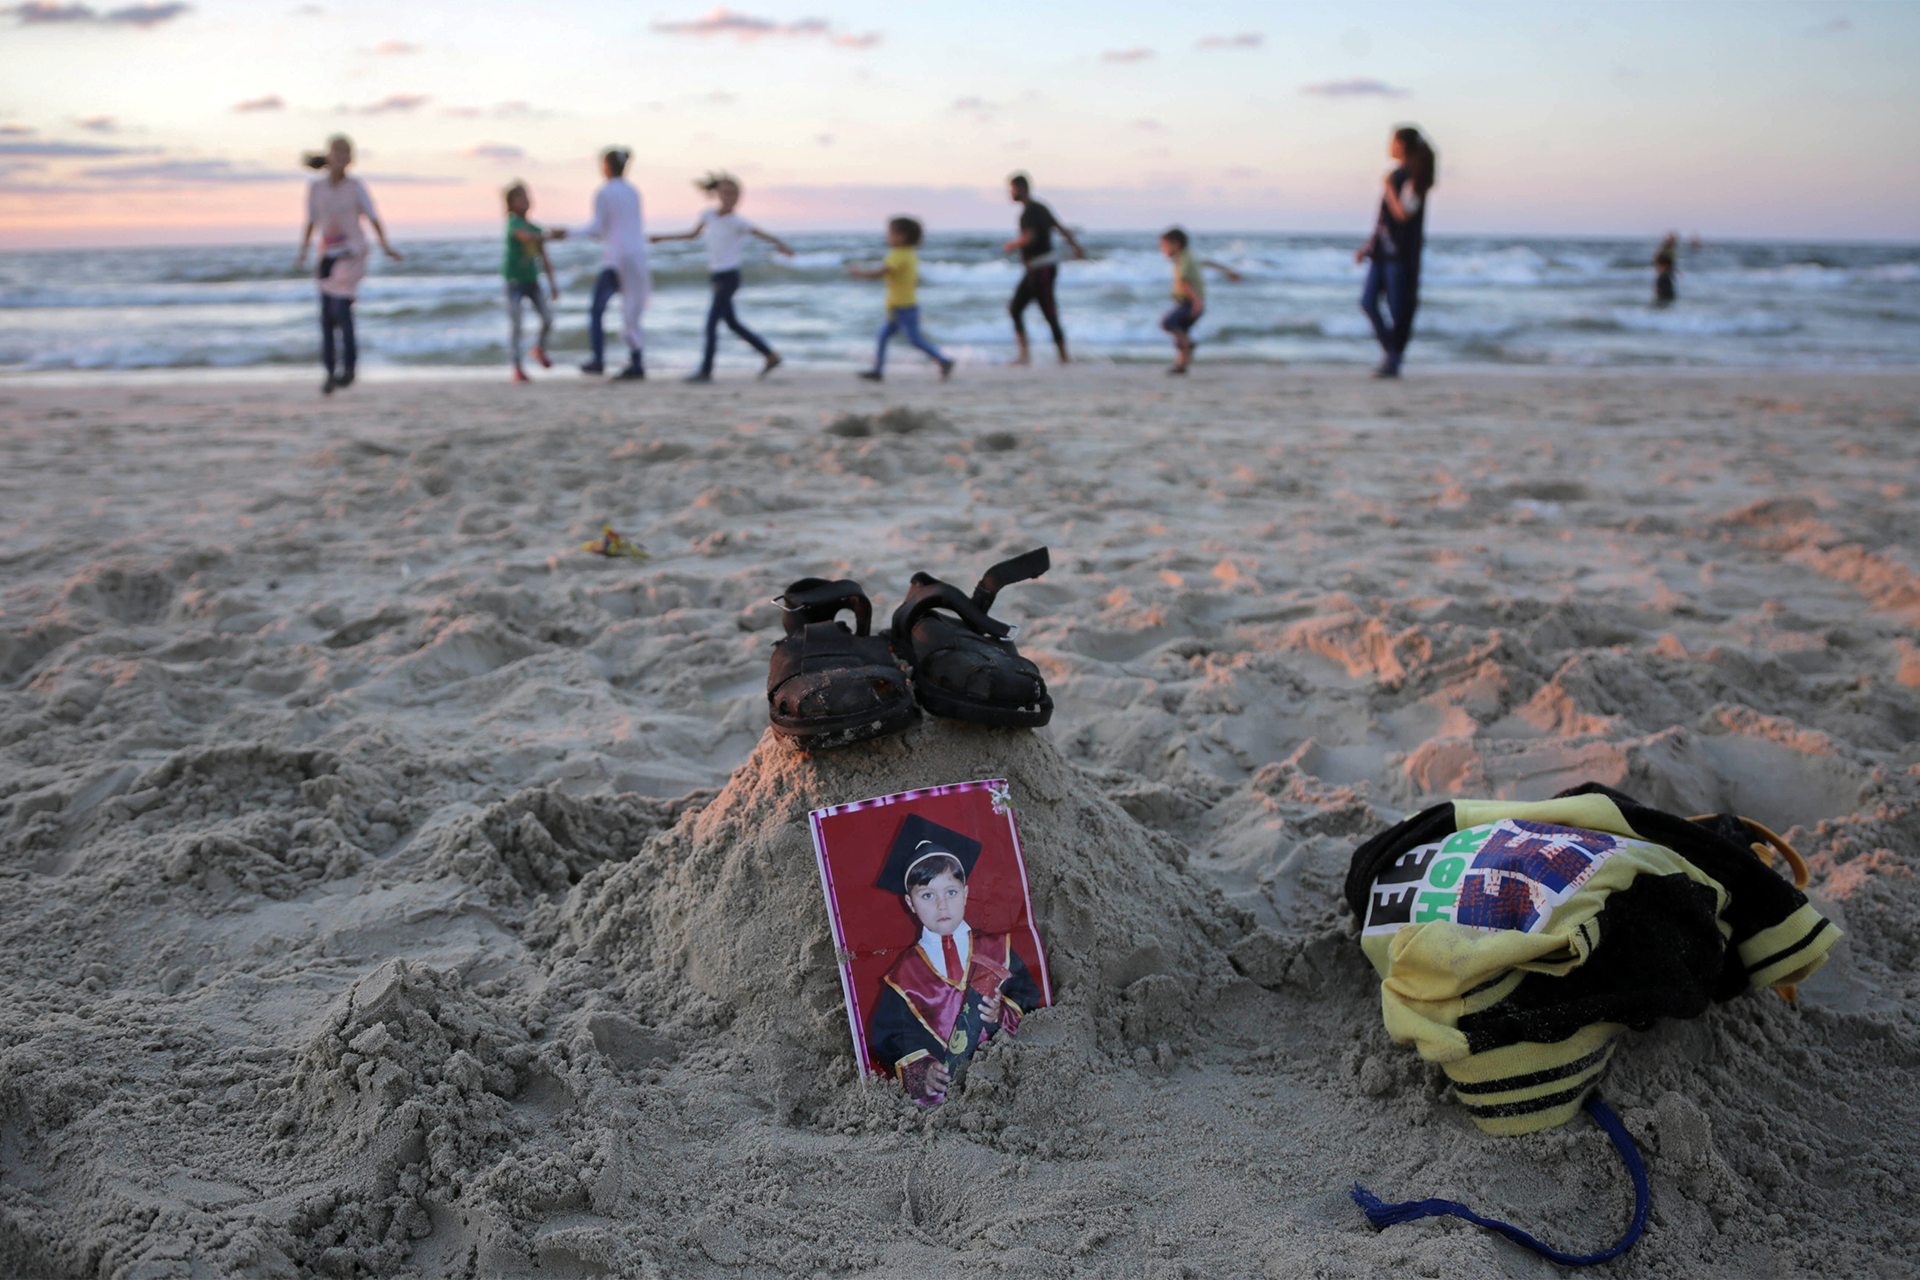 Mohammad's surviving siblings and cousins run on a beach on October 12 behind a makeshift memorial of his sandals and clothing. (Photo: DCIP / Ezz Zanoun)